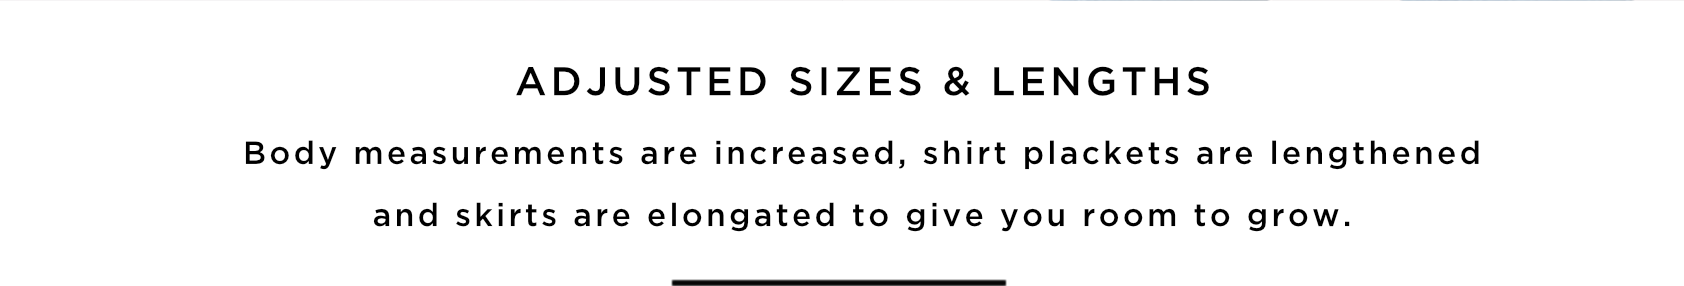 ADJUSTED SIZES & LENGTHS